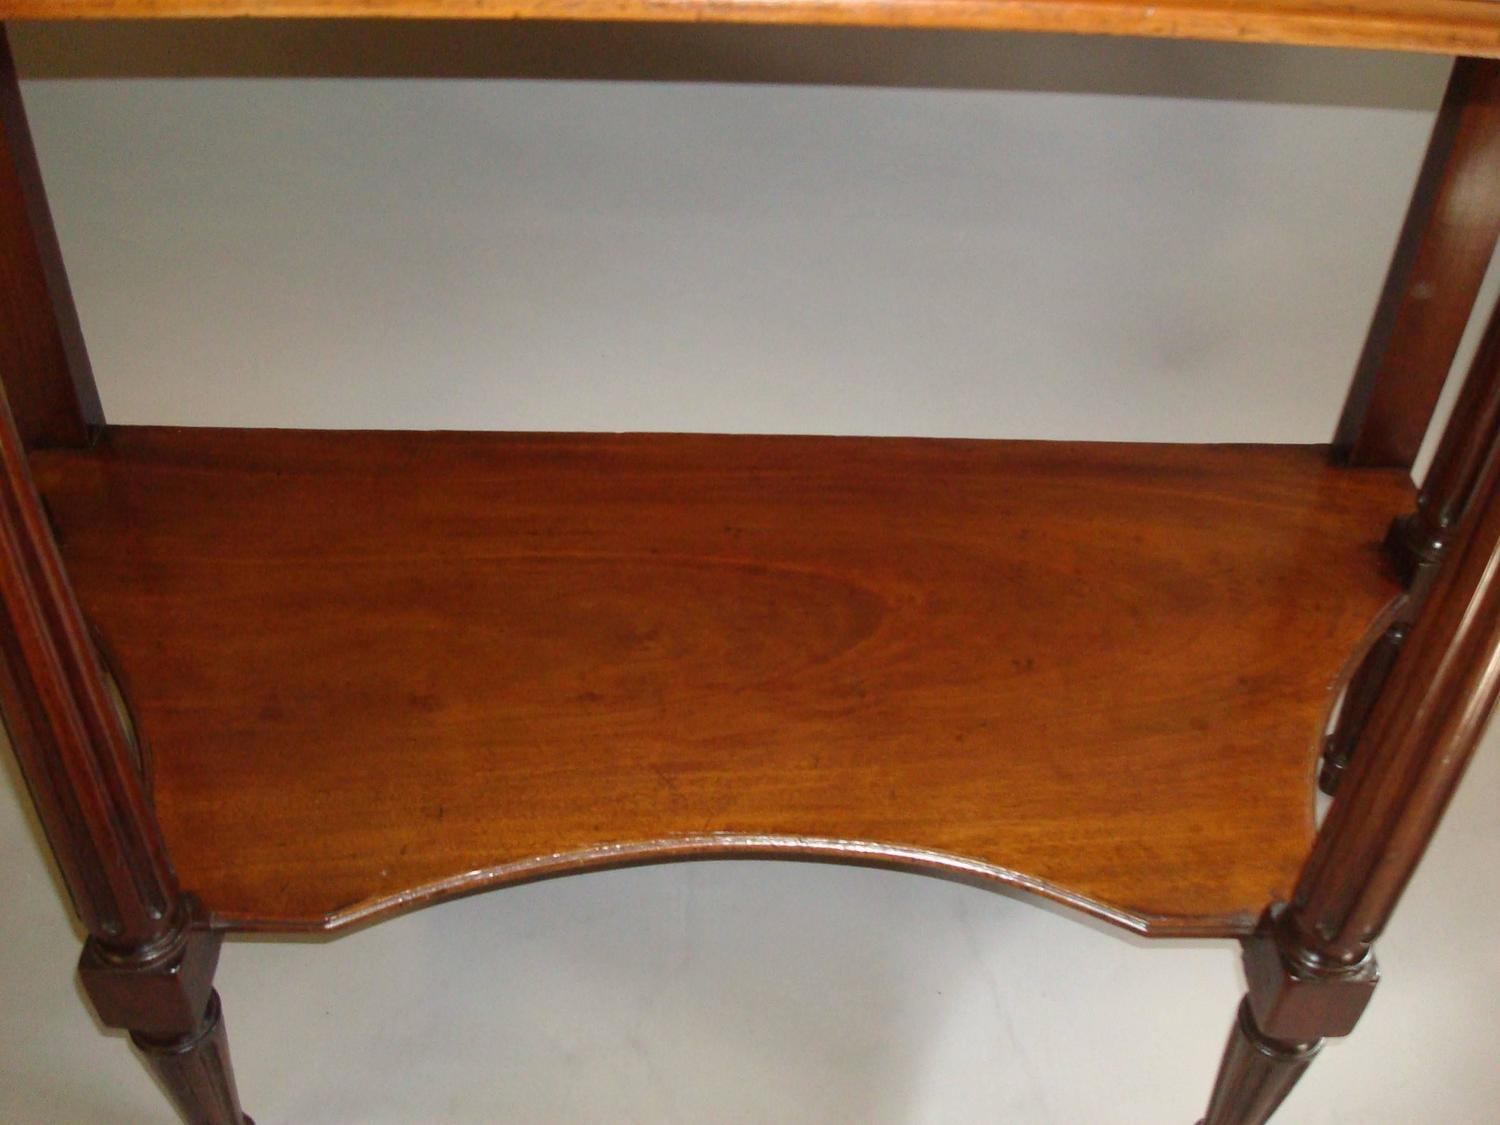 19th century french console table in mahogany and